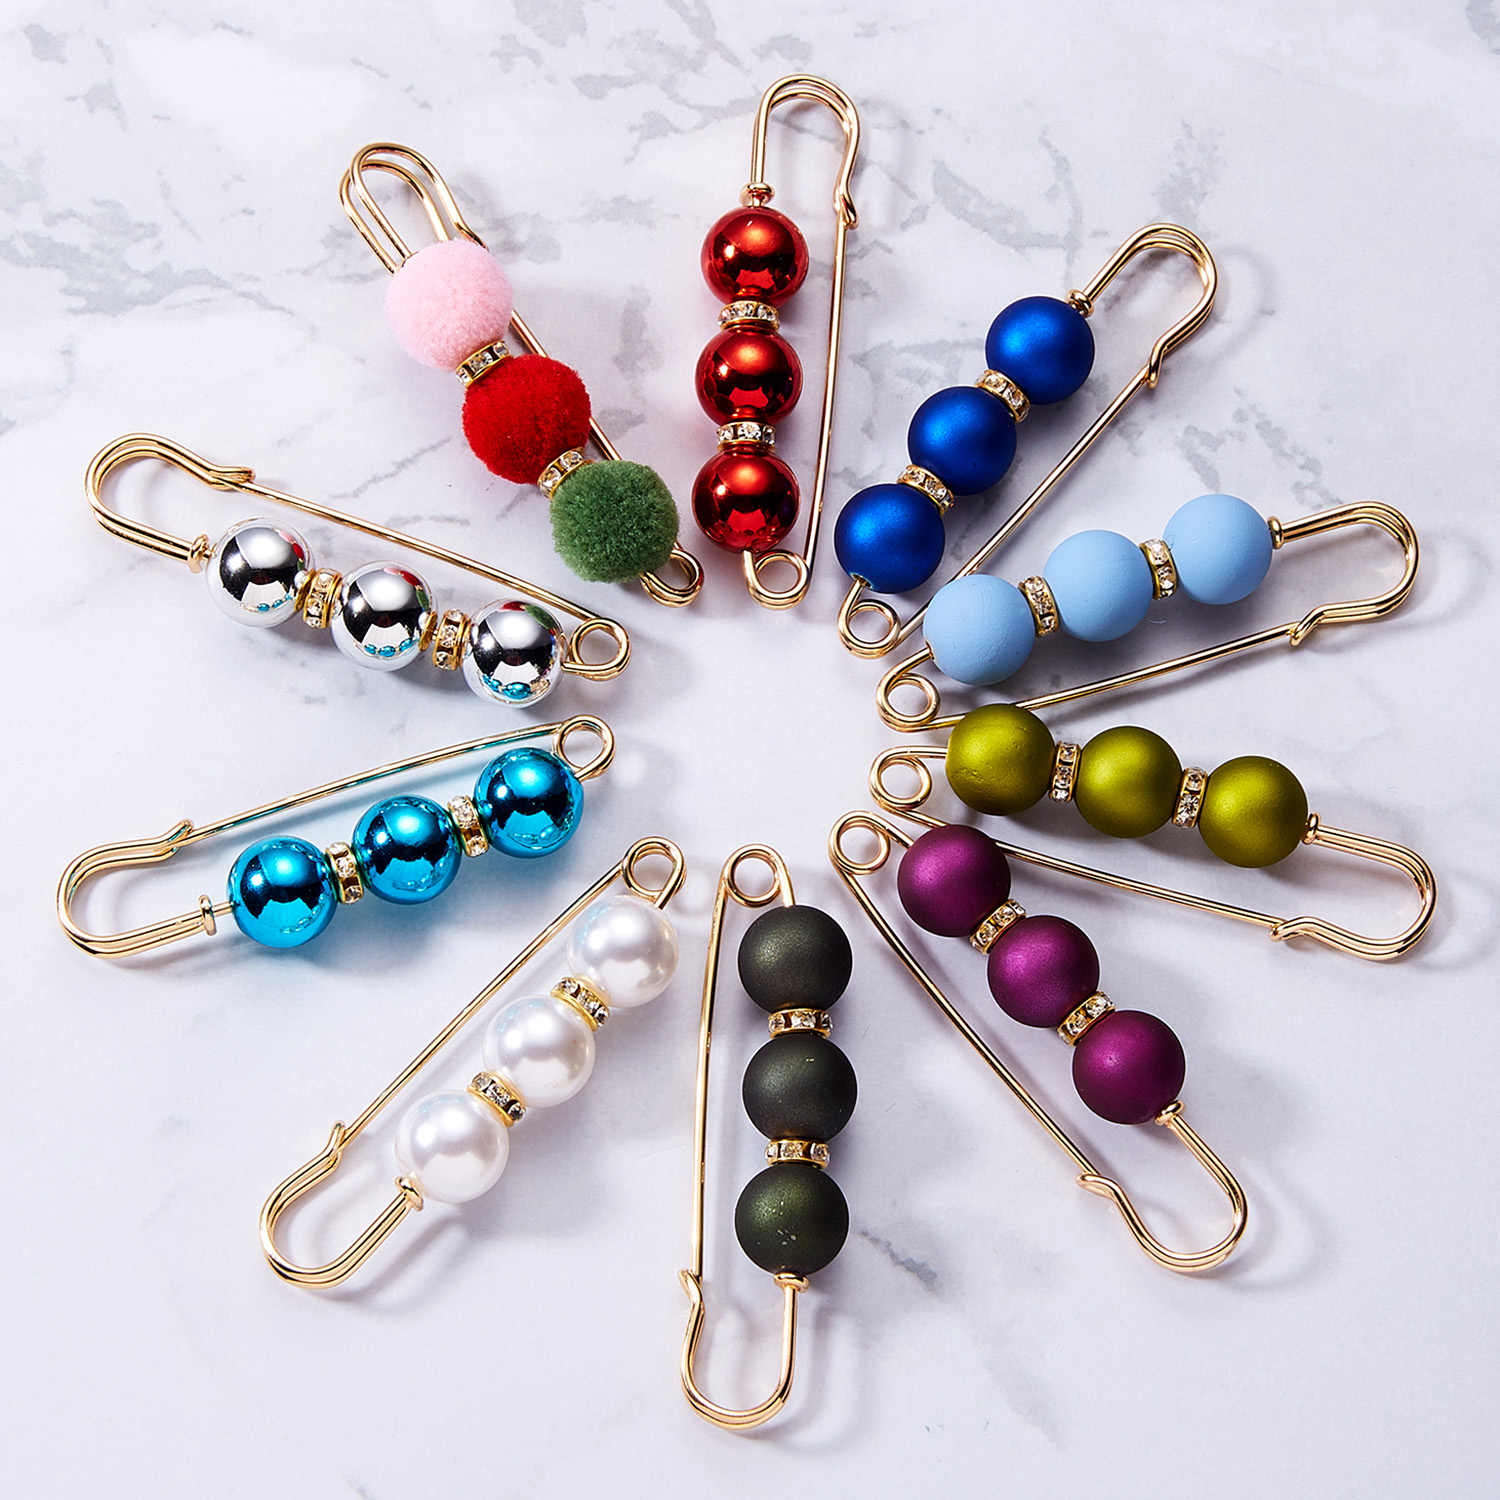 RINHOO Hot Sale 1Pc Imitation Pearl Circle Brooch PU Button Women Zircon Fashion Brooches Colourful